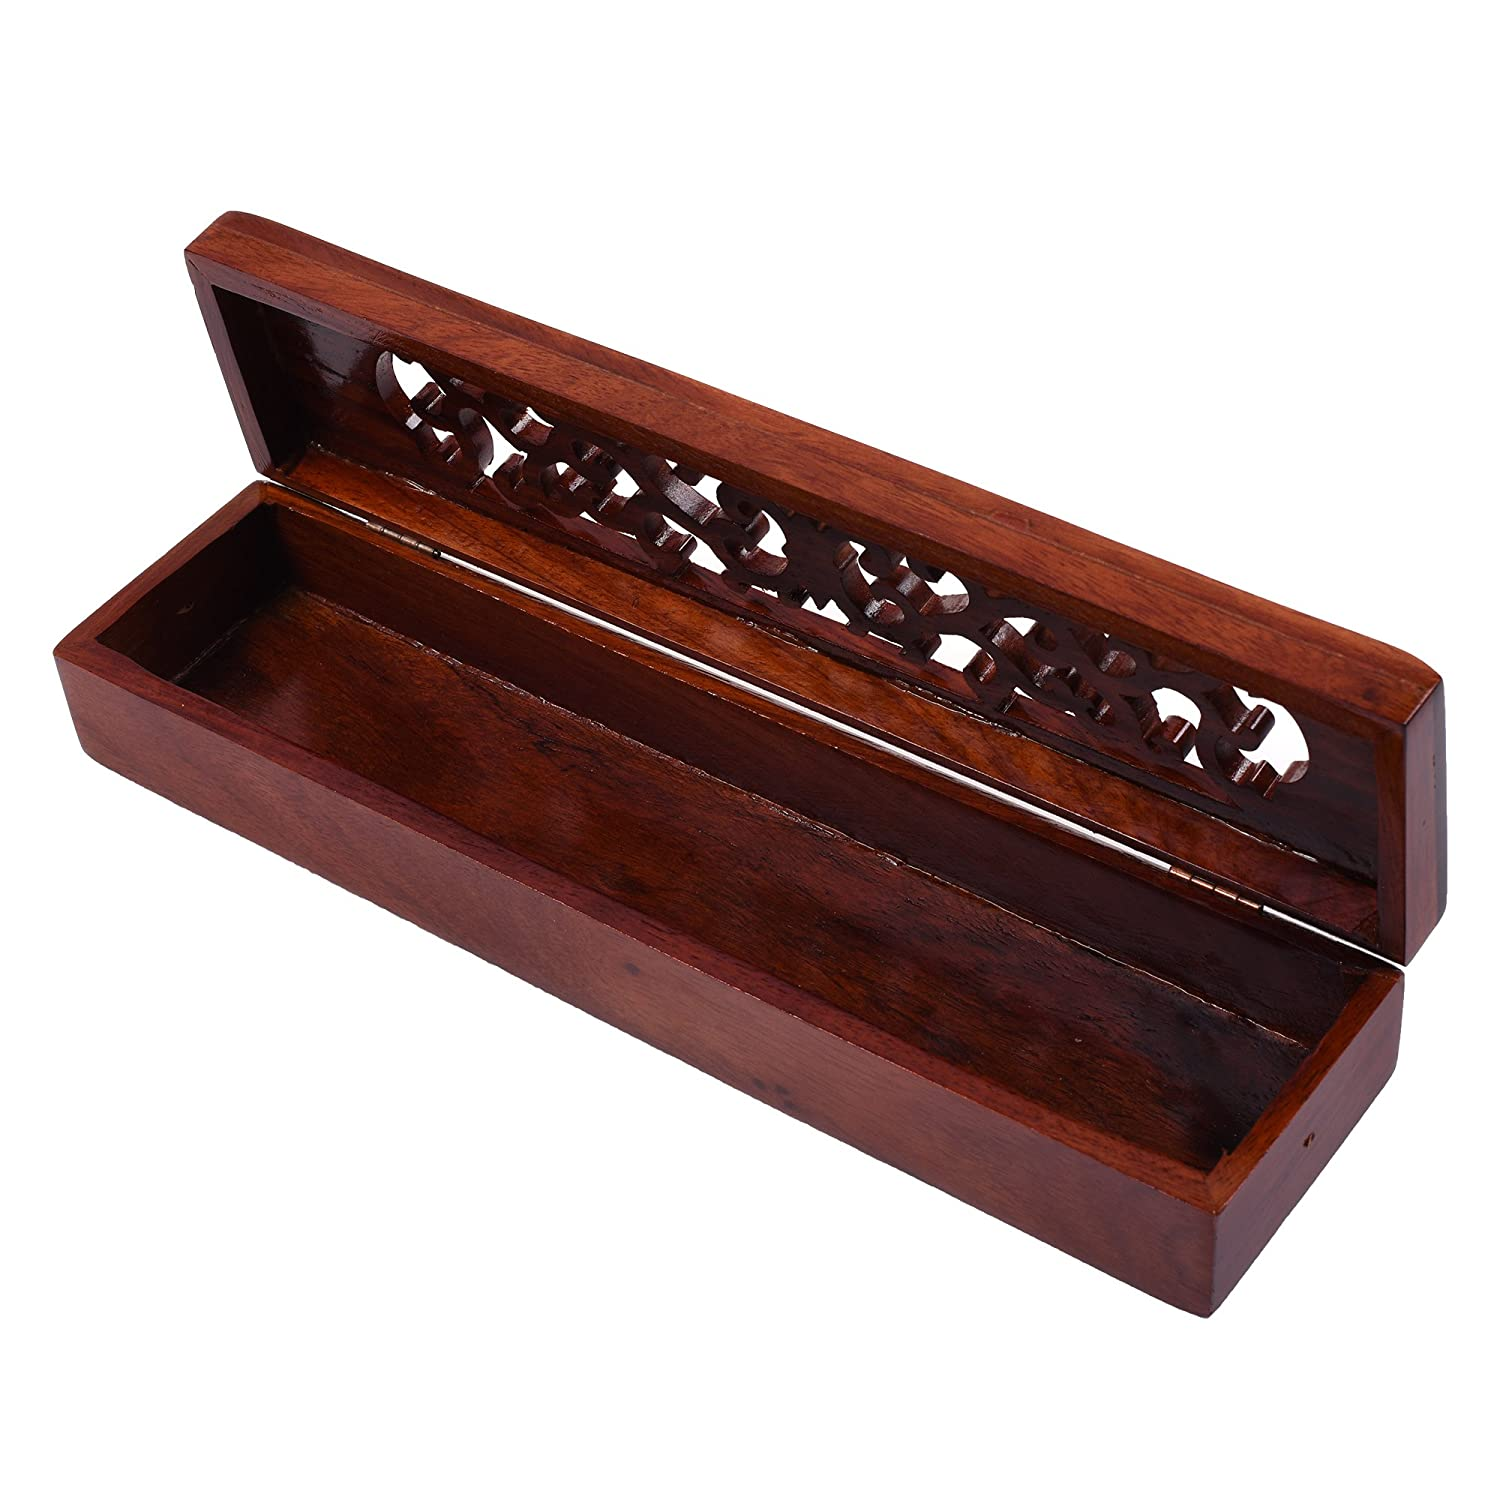 KLOUD City 10.75'' x 2.5'' x 1.75'' Wooden Incense Burner Case Box Holders